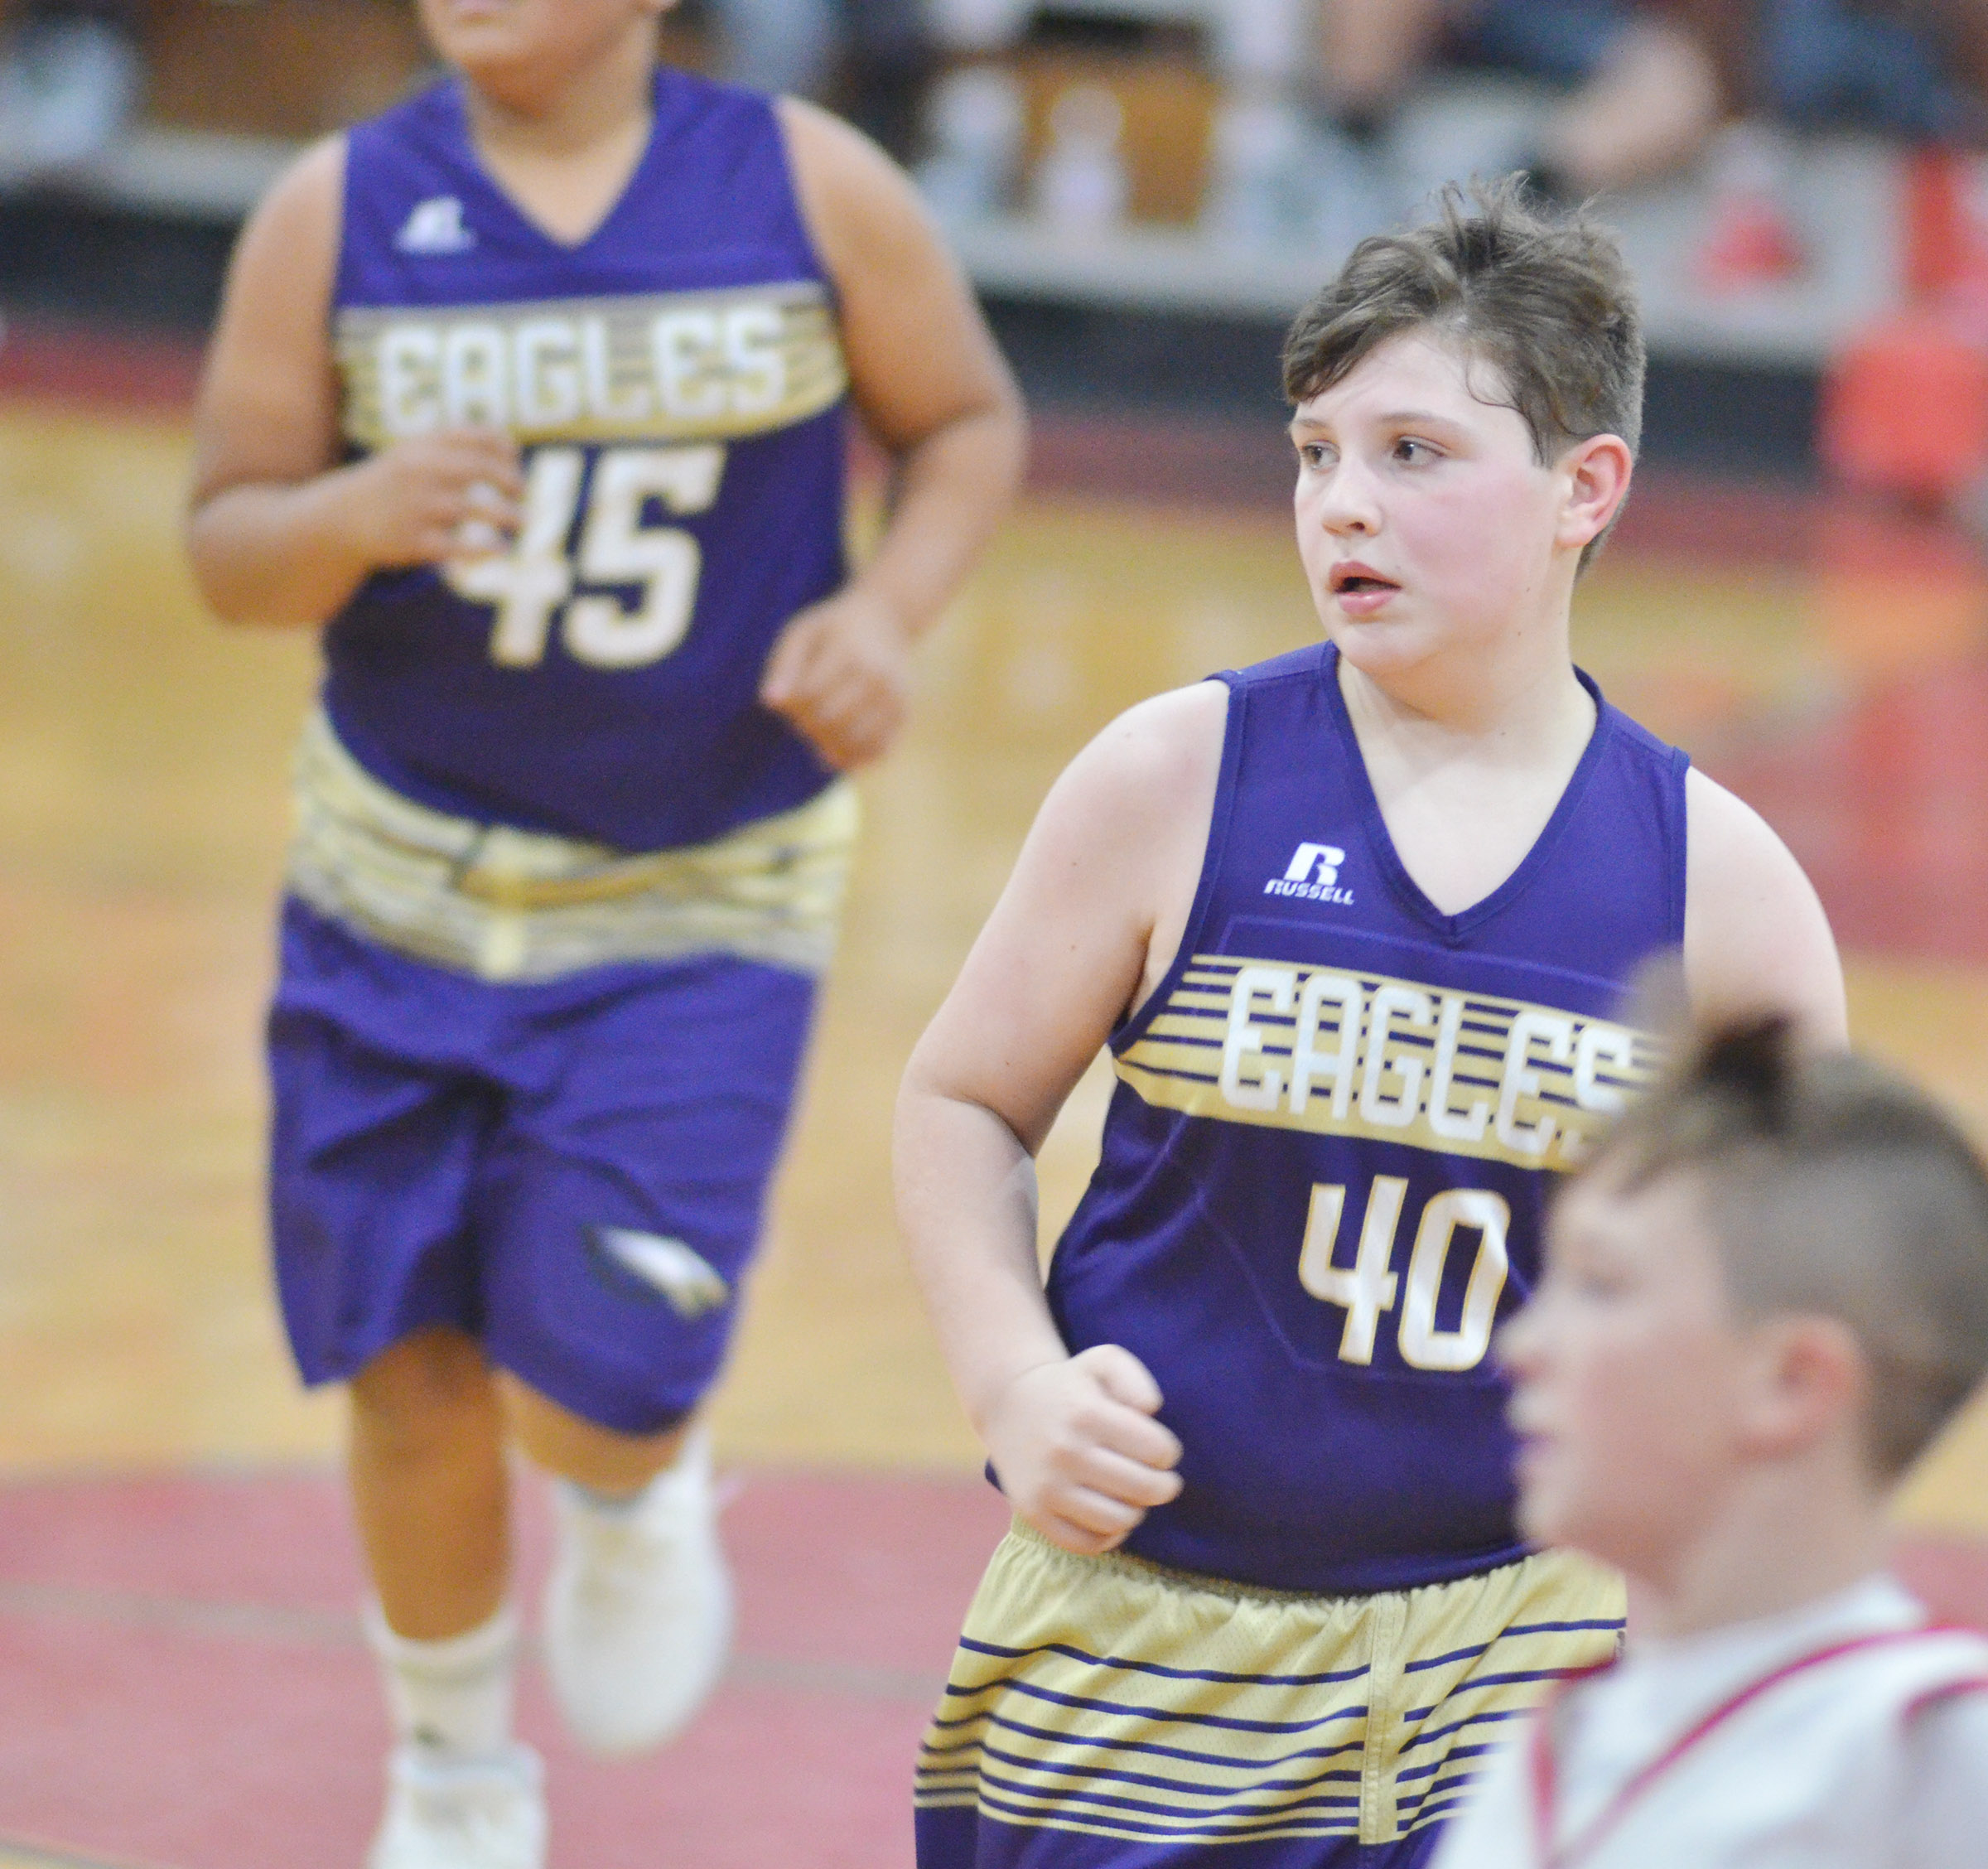 Campbellsville Elementary School fifth-grader Andrew Mardis runs down the court.